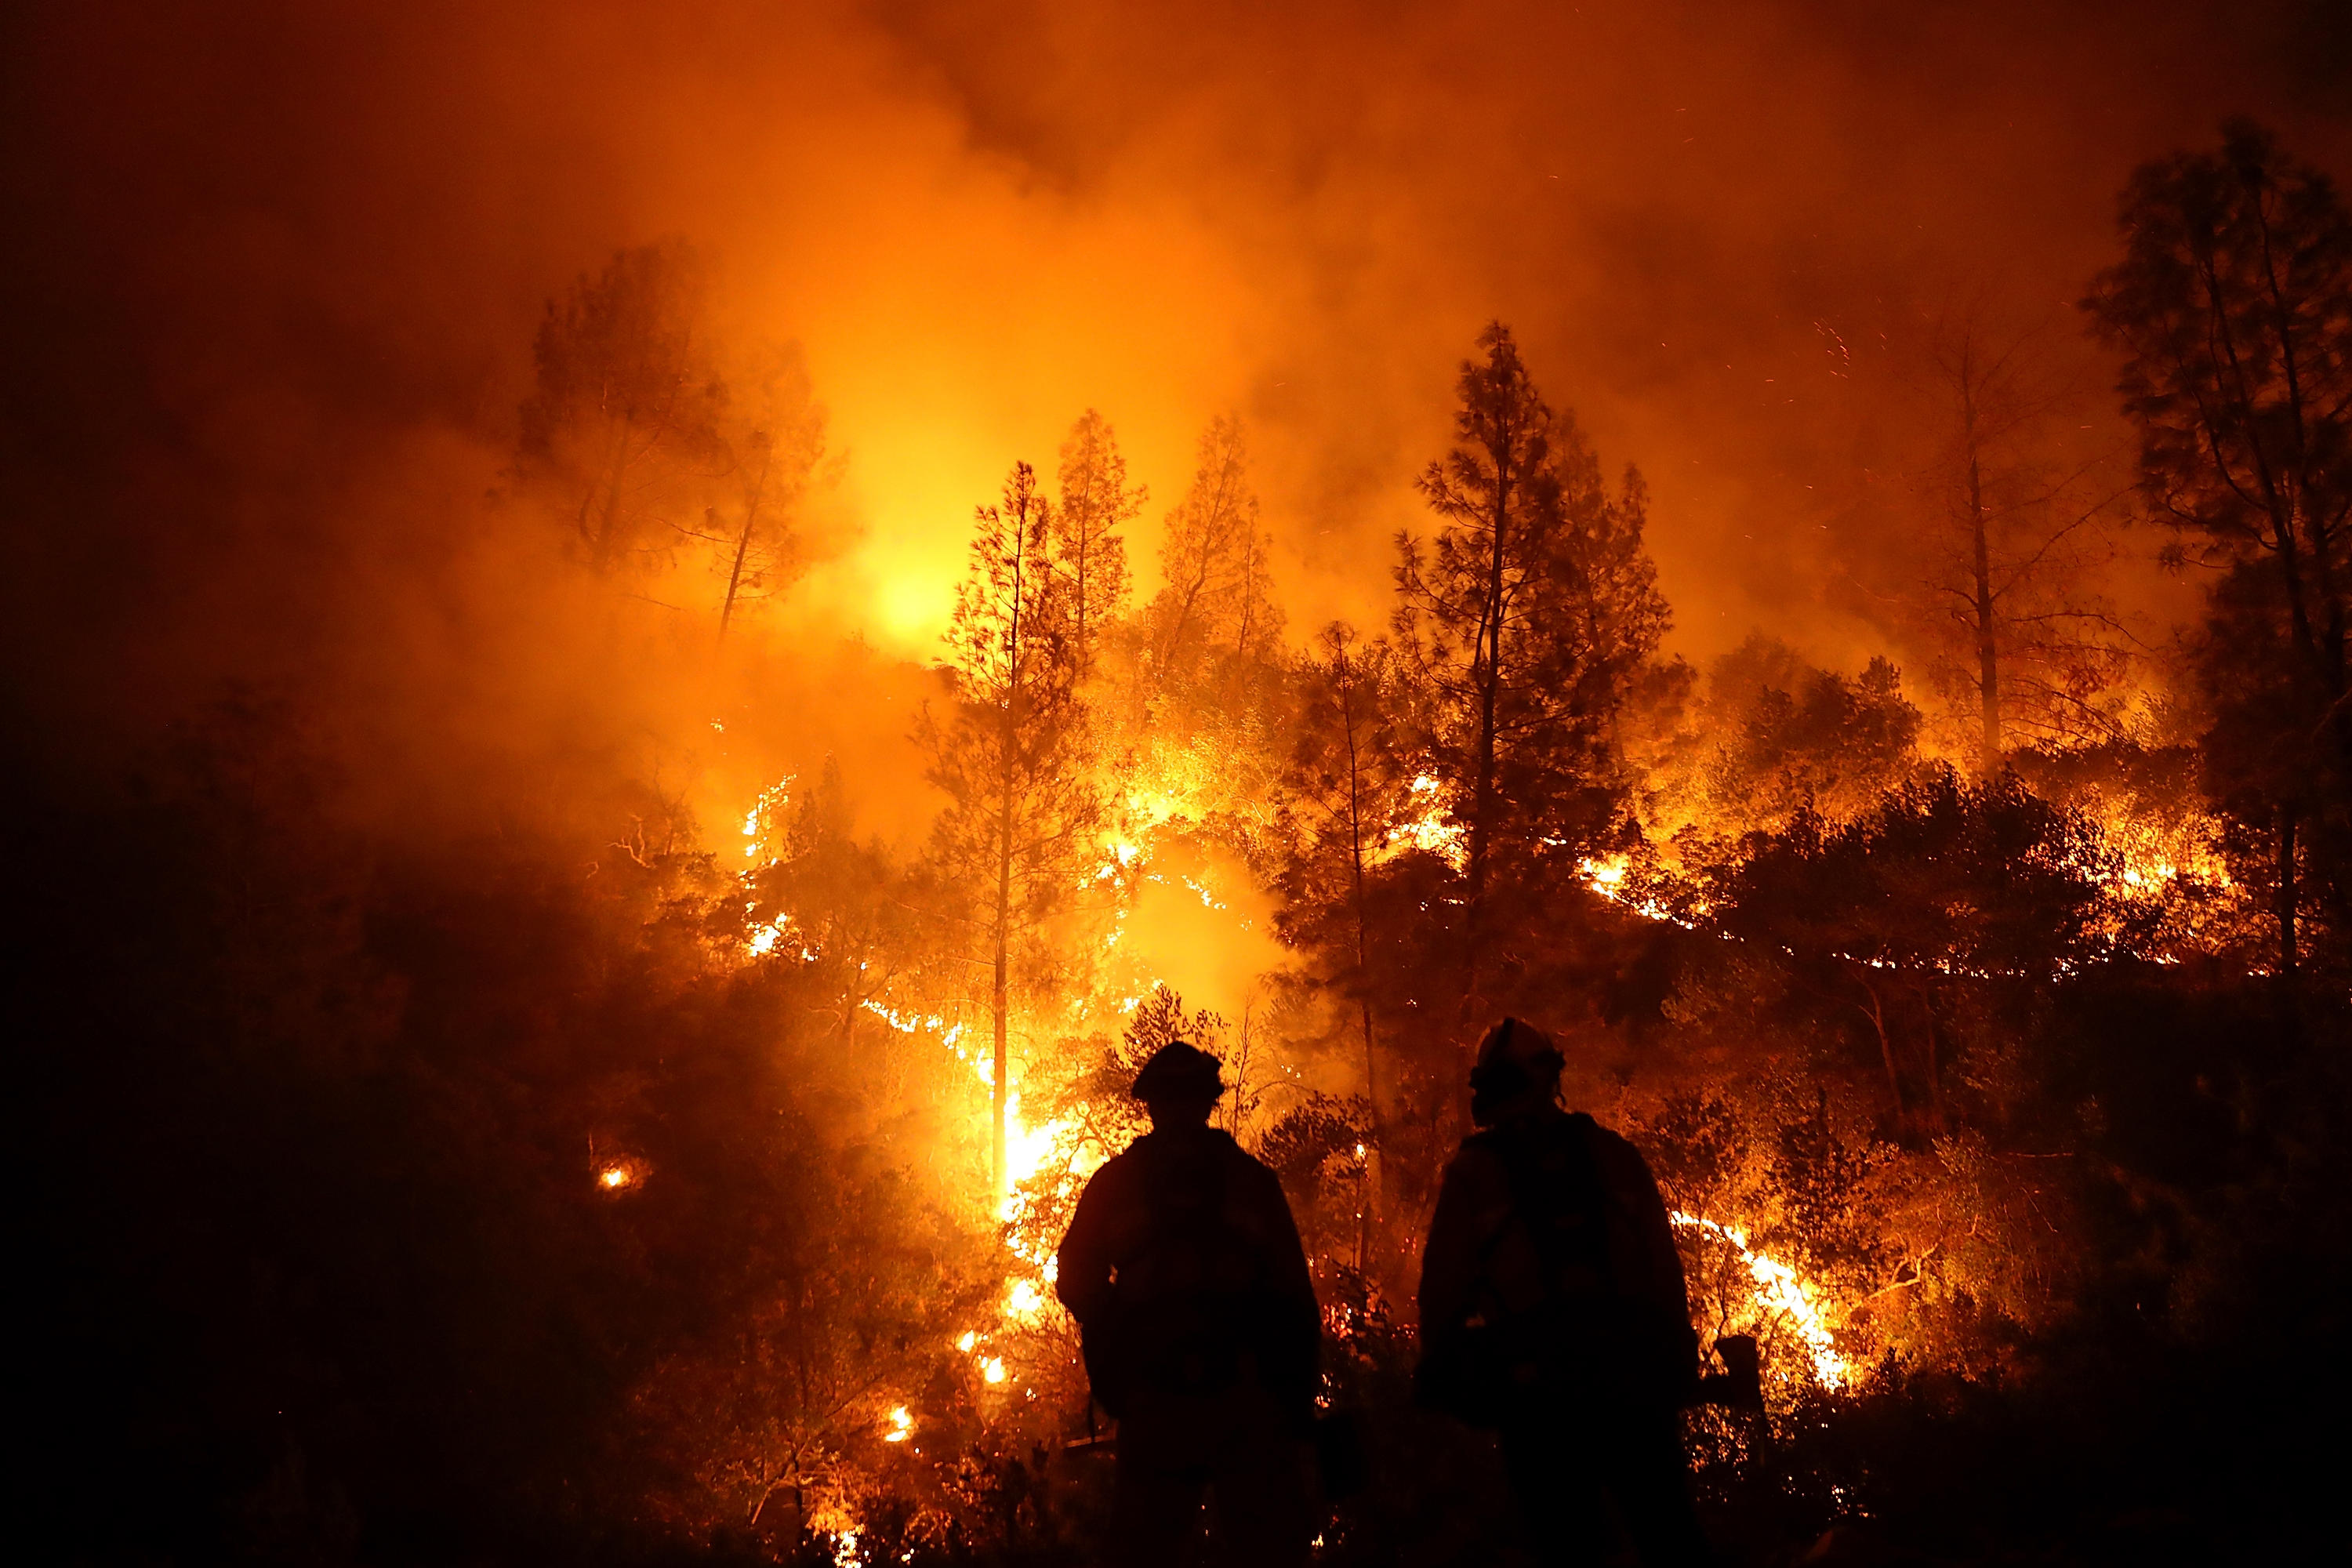 Mendocino-Complex Fire In Northern California Grows To Largest Fire In State's History